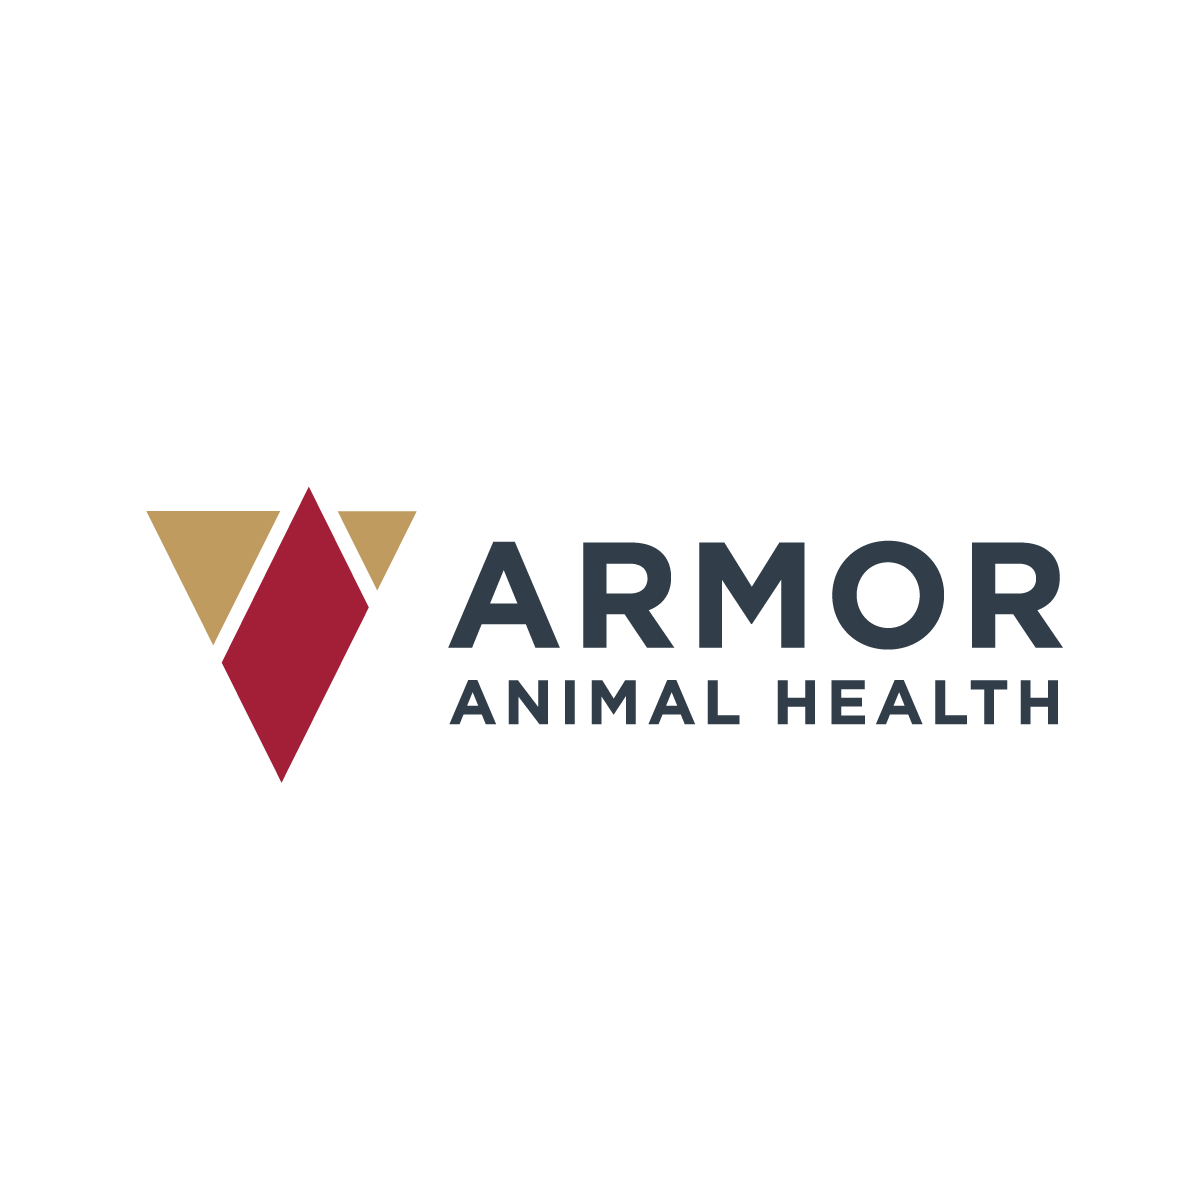 Armor Animal Health